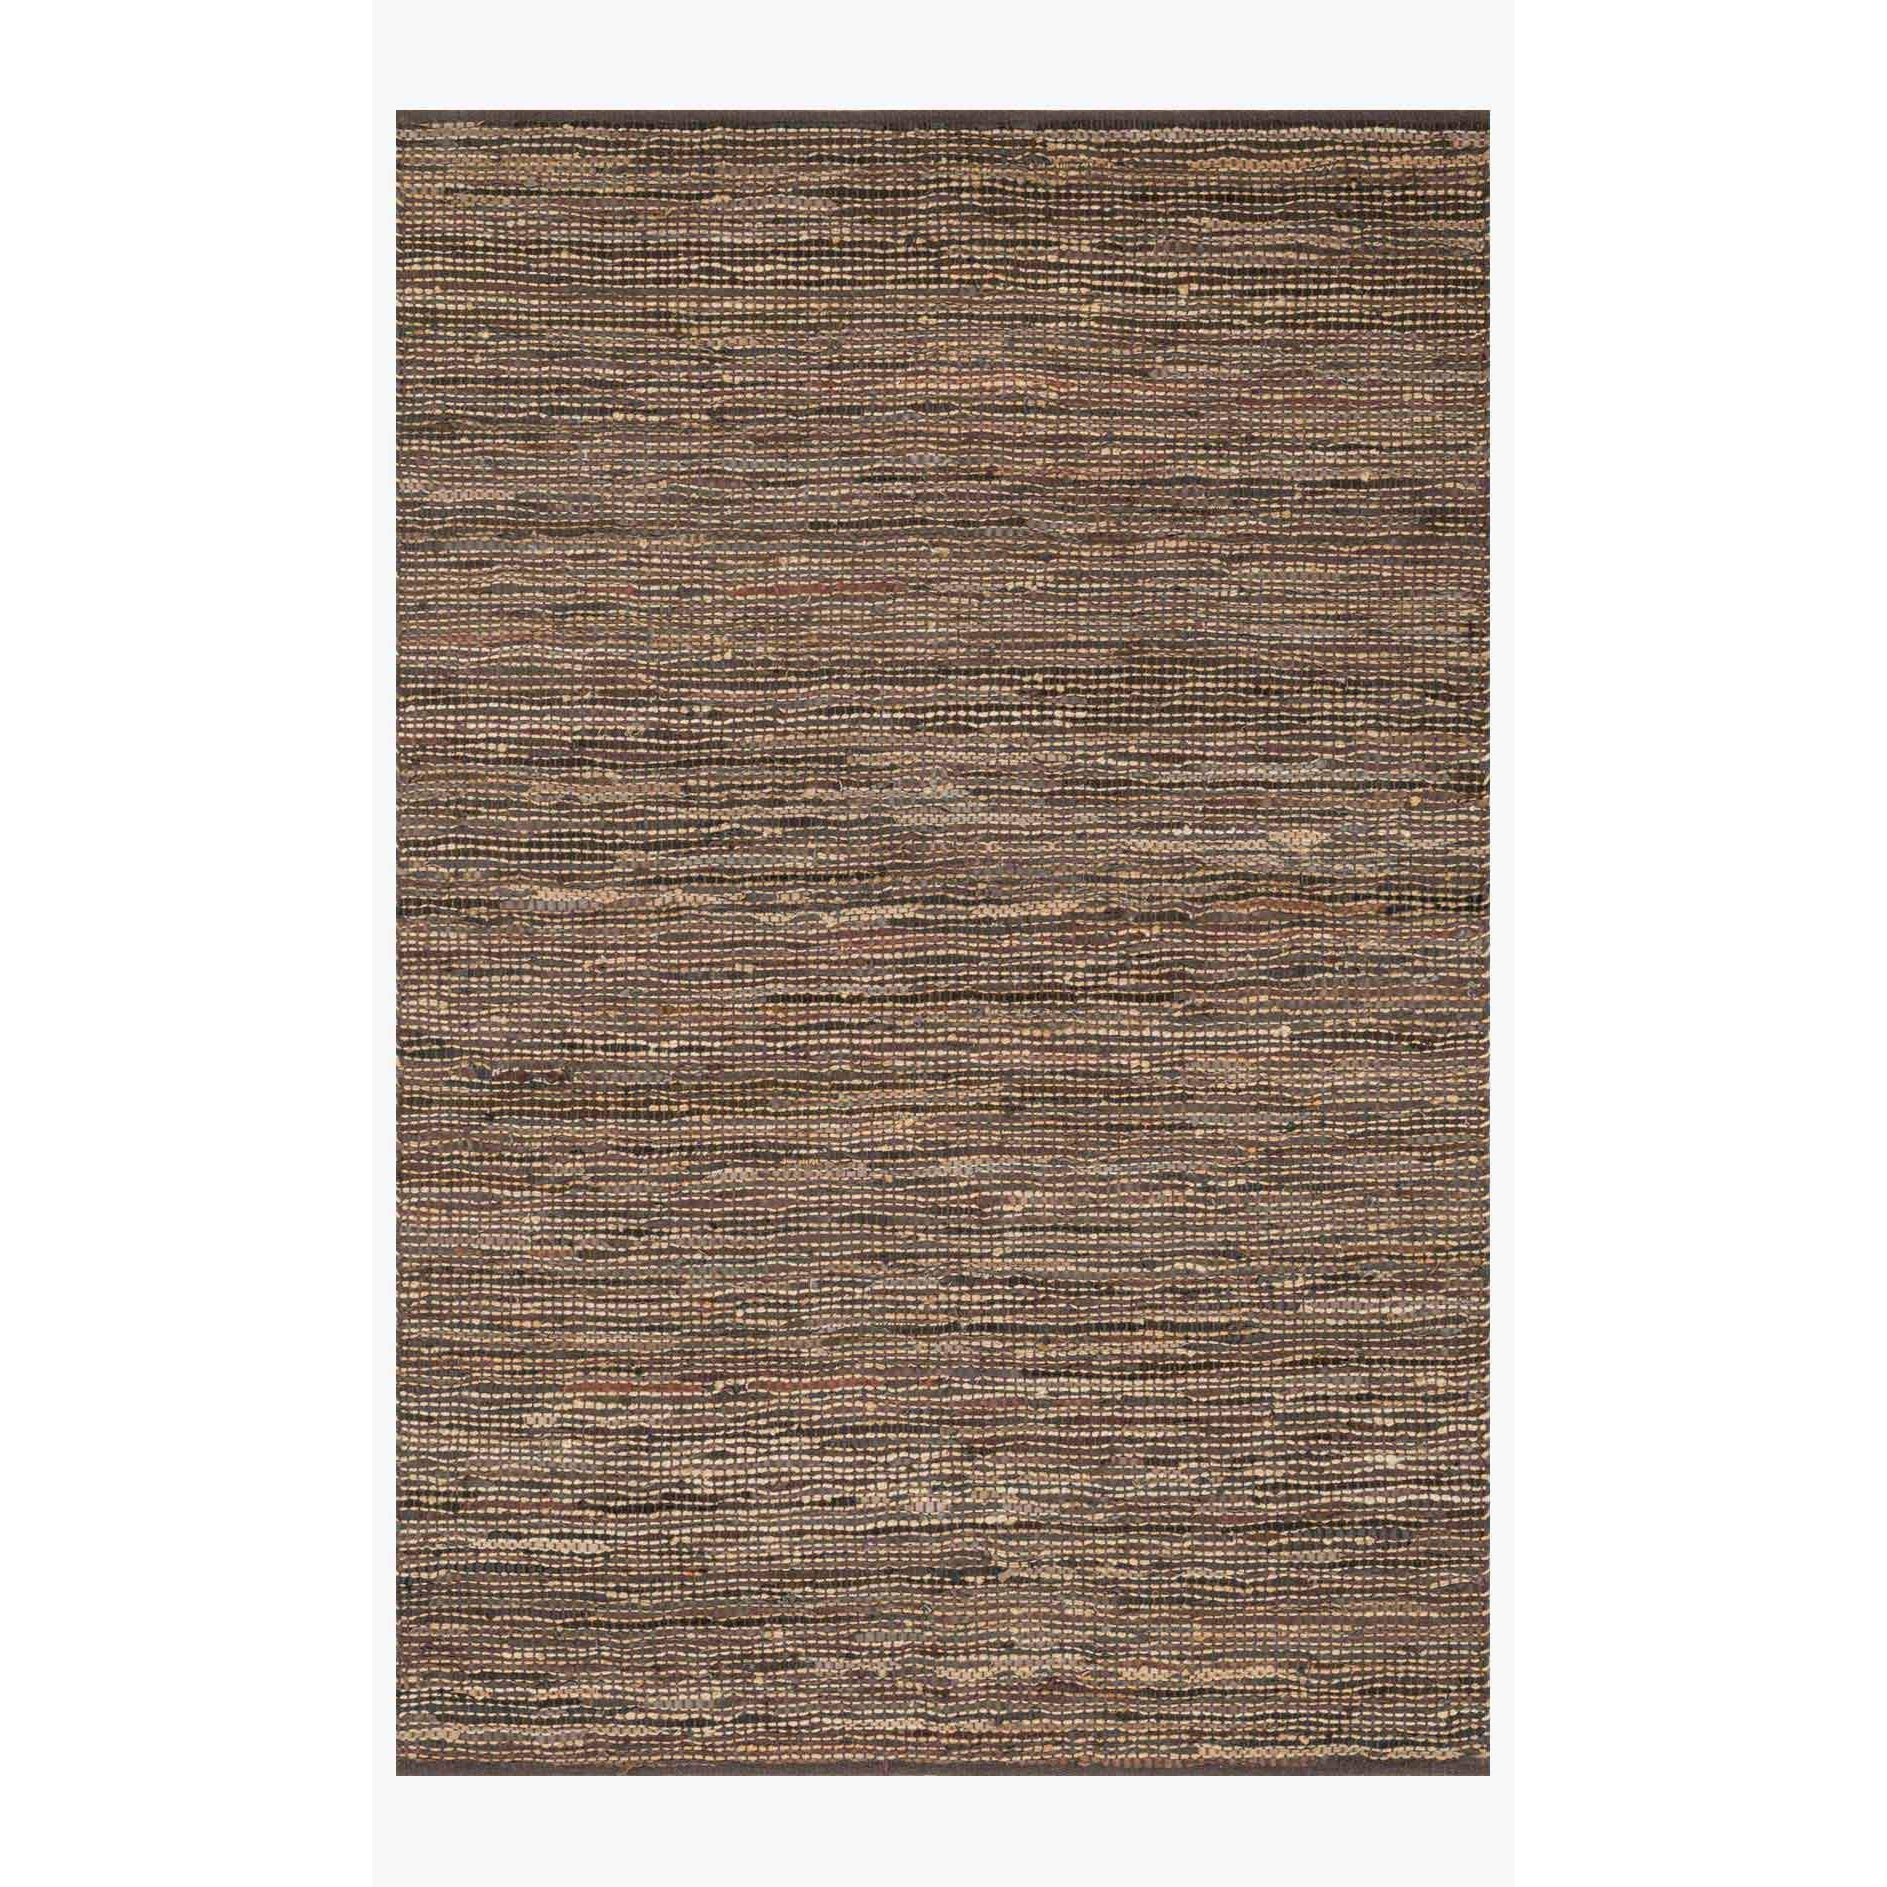 Edge Rug by Loloi Rugs - ED-01 - Brown